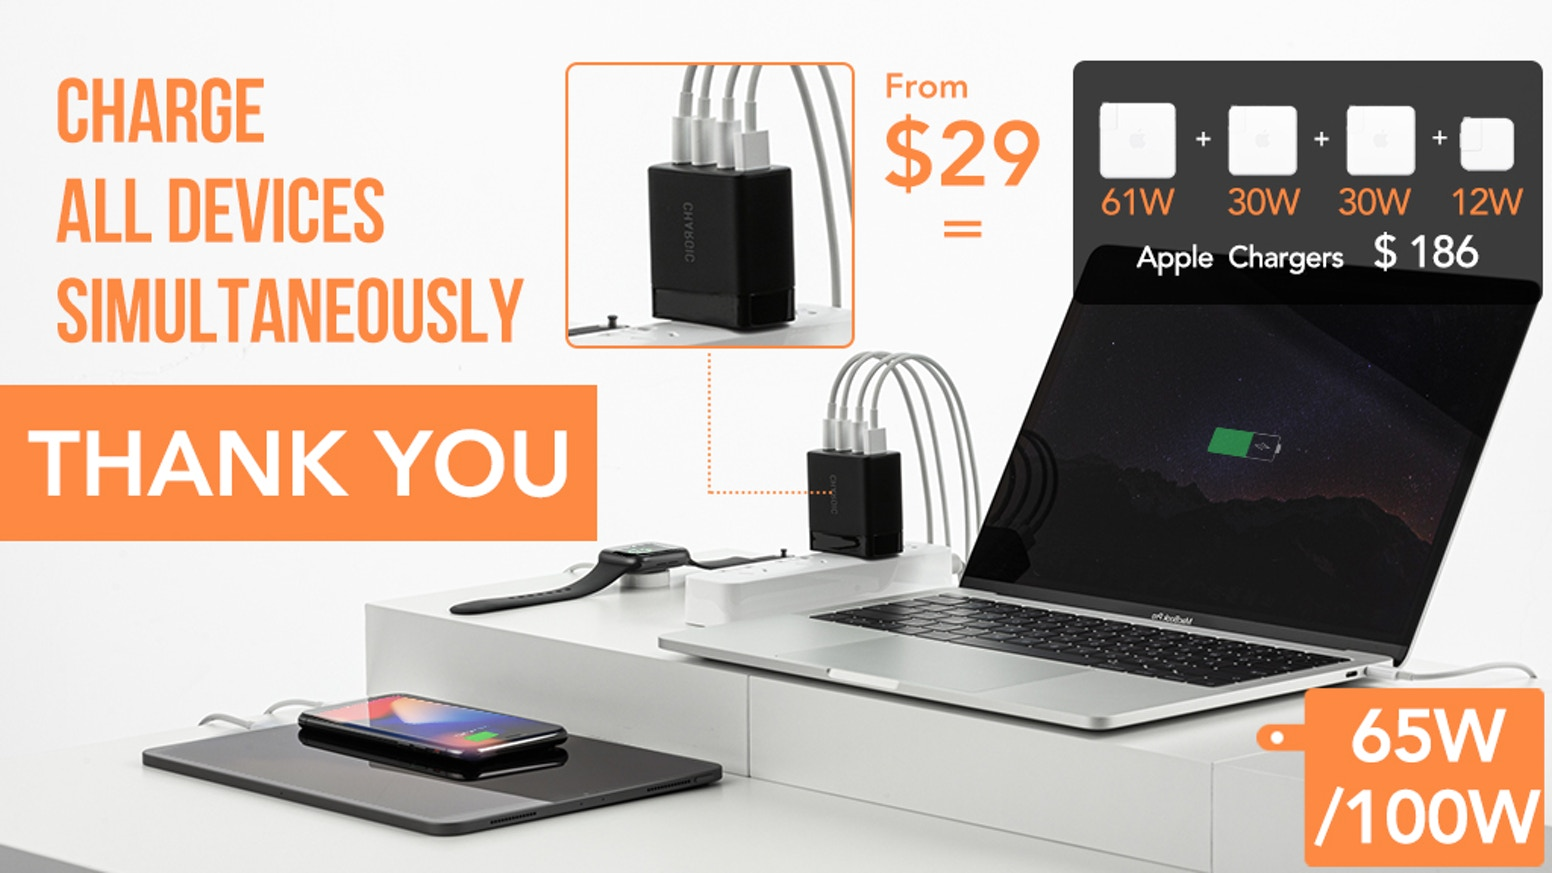 Quick Charging 4 Devices | 3 USB-C & 1 USB-A | Support All Fast Charging Protocols | 100W & 65W Versions | International Pins Supported